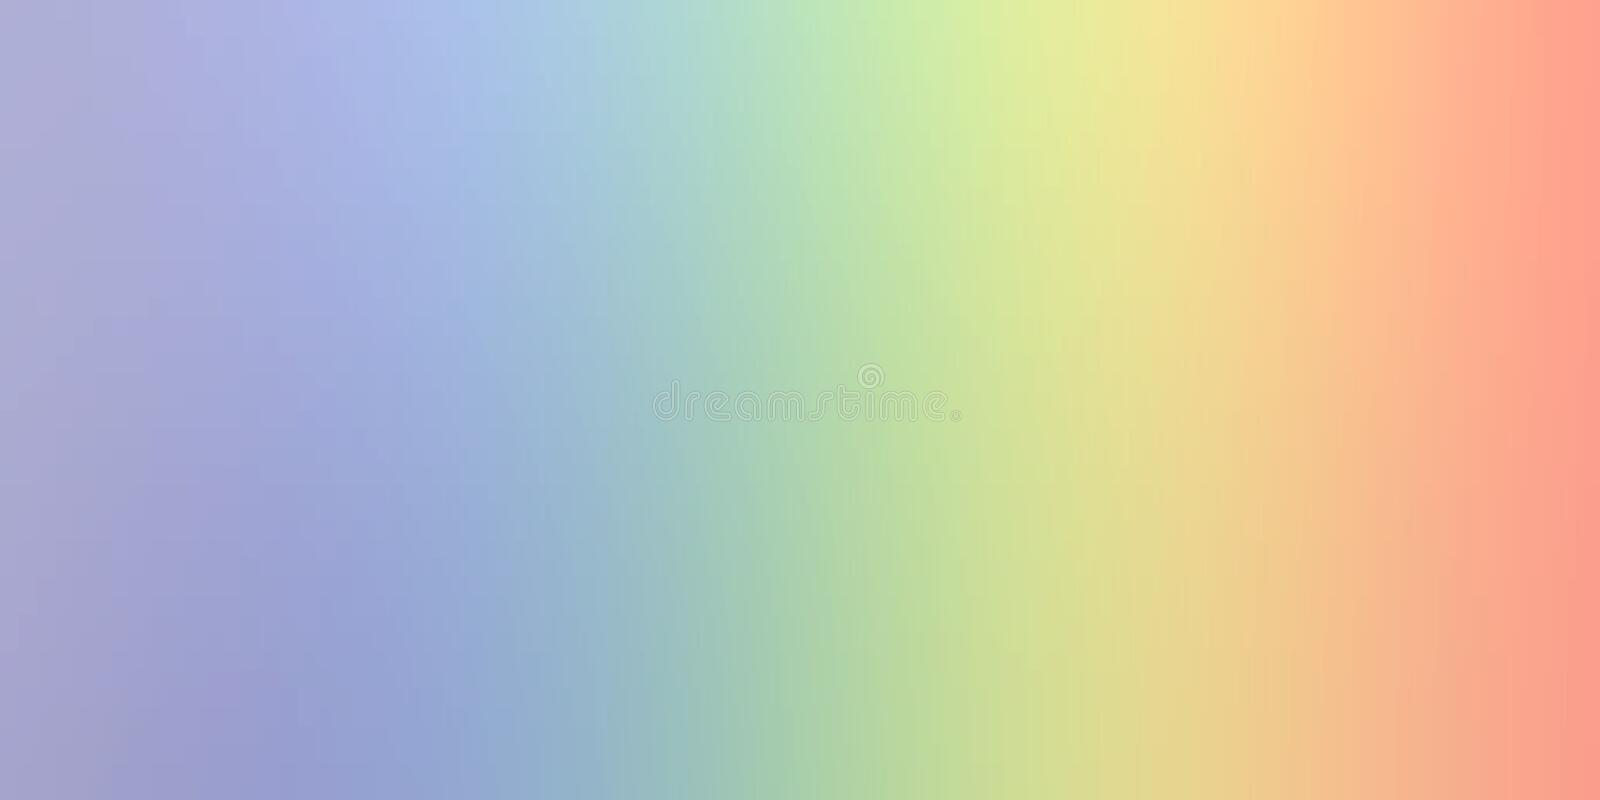 Pastel color abstract blur background wallpaper, vector illustration. royalty free illustration